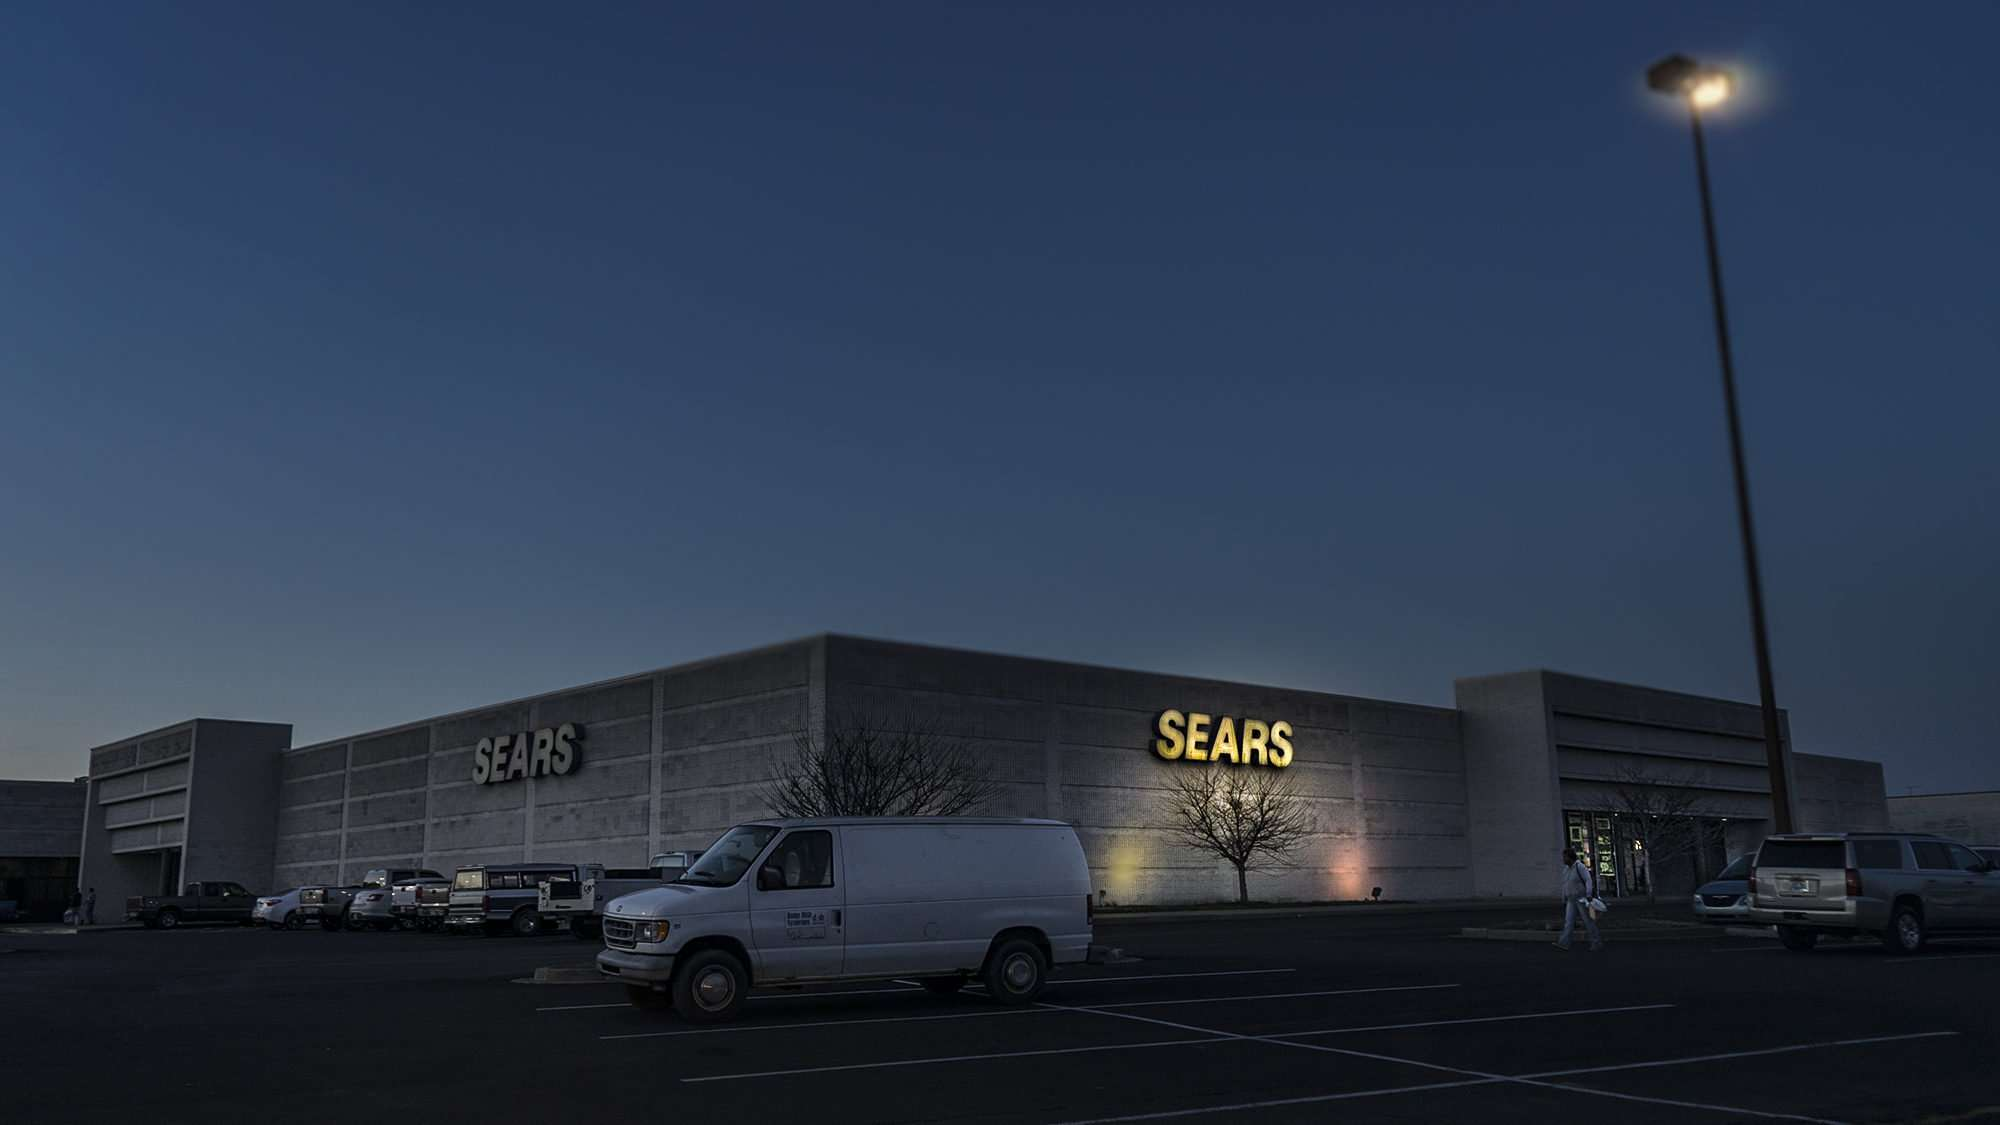 Sears closes permanently in Kentucky Oaks Mall on Mar 19, 2017